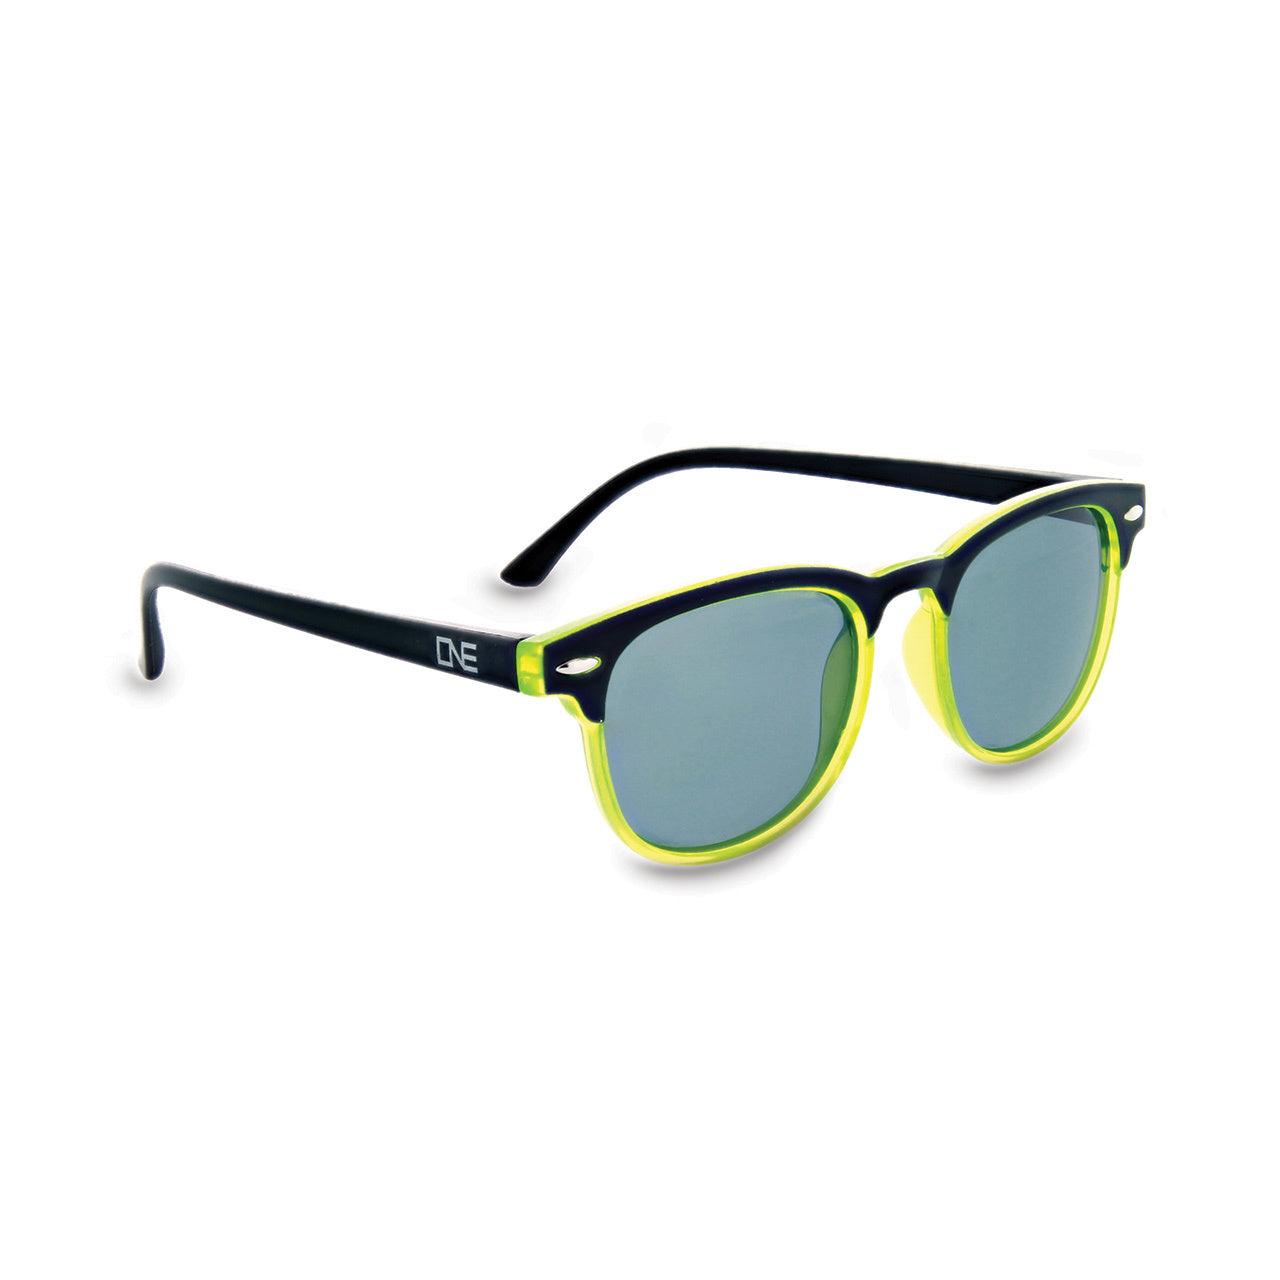 Optic Nerve Kid's Stiltskin Sunglasses - Shiny Black with Lime